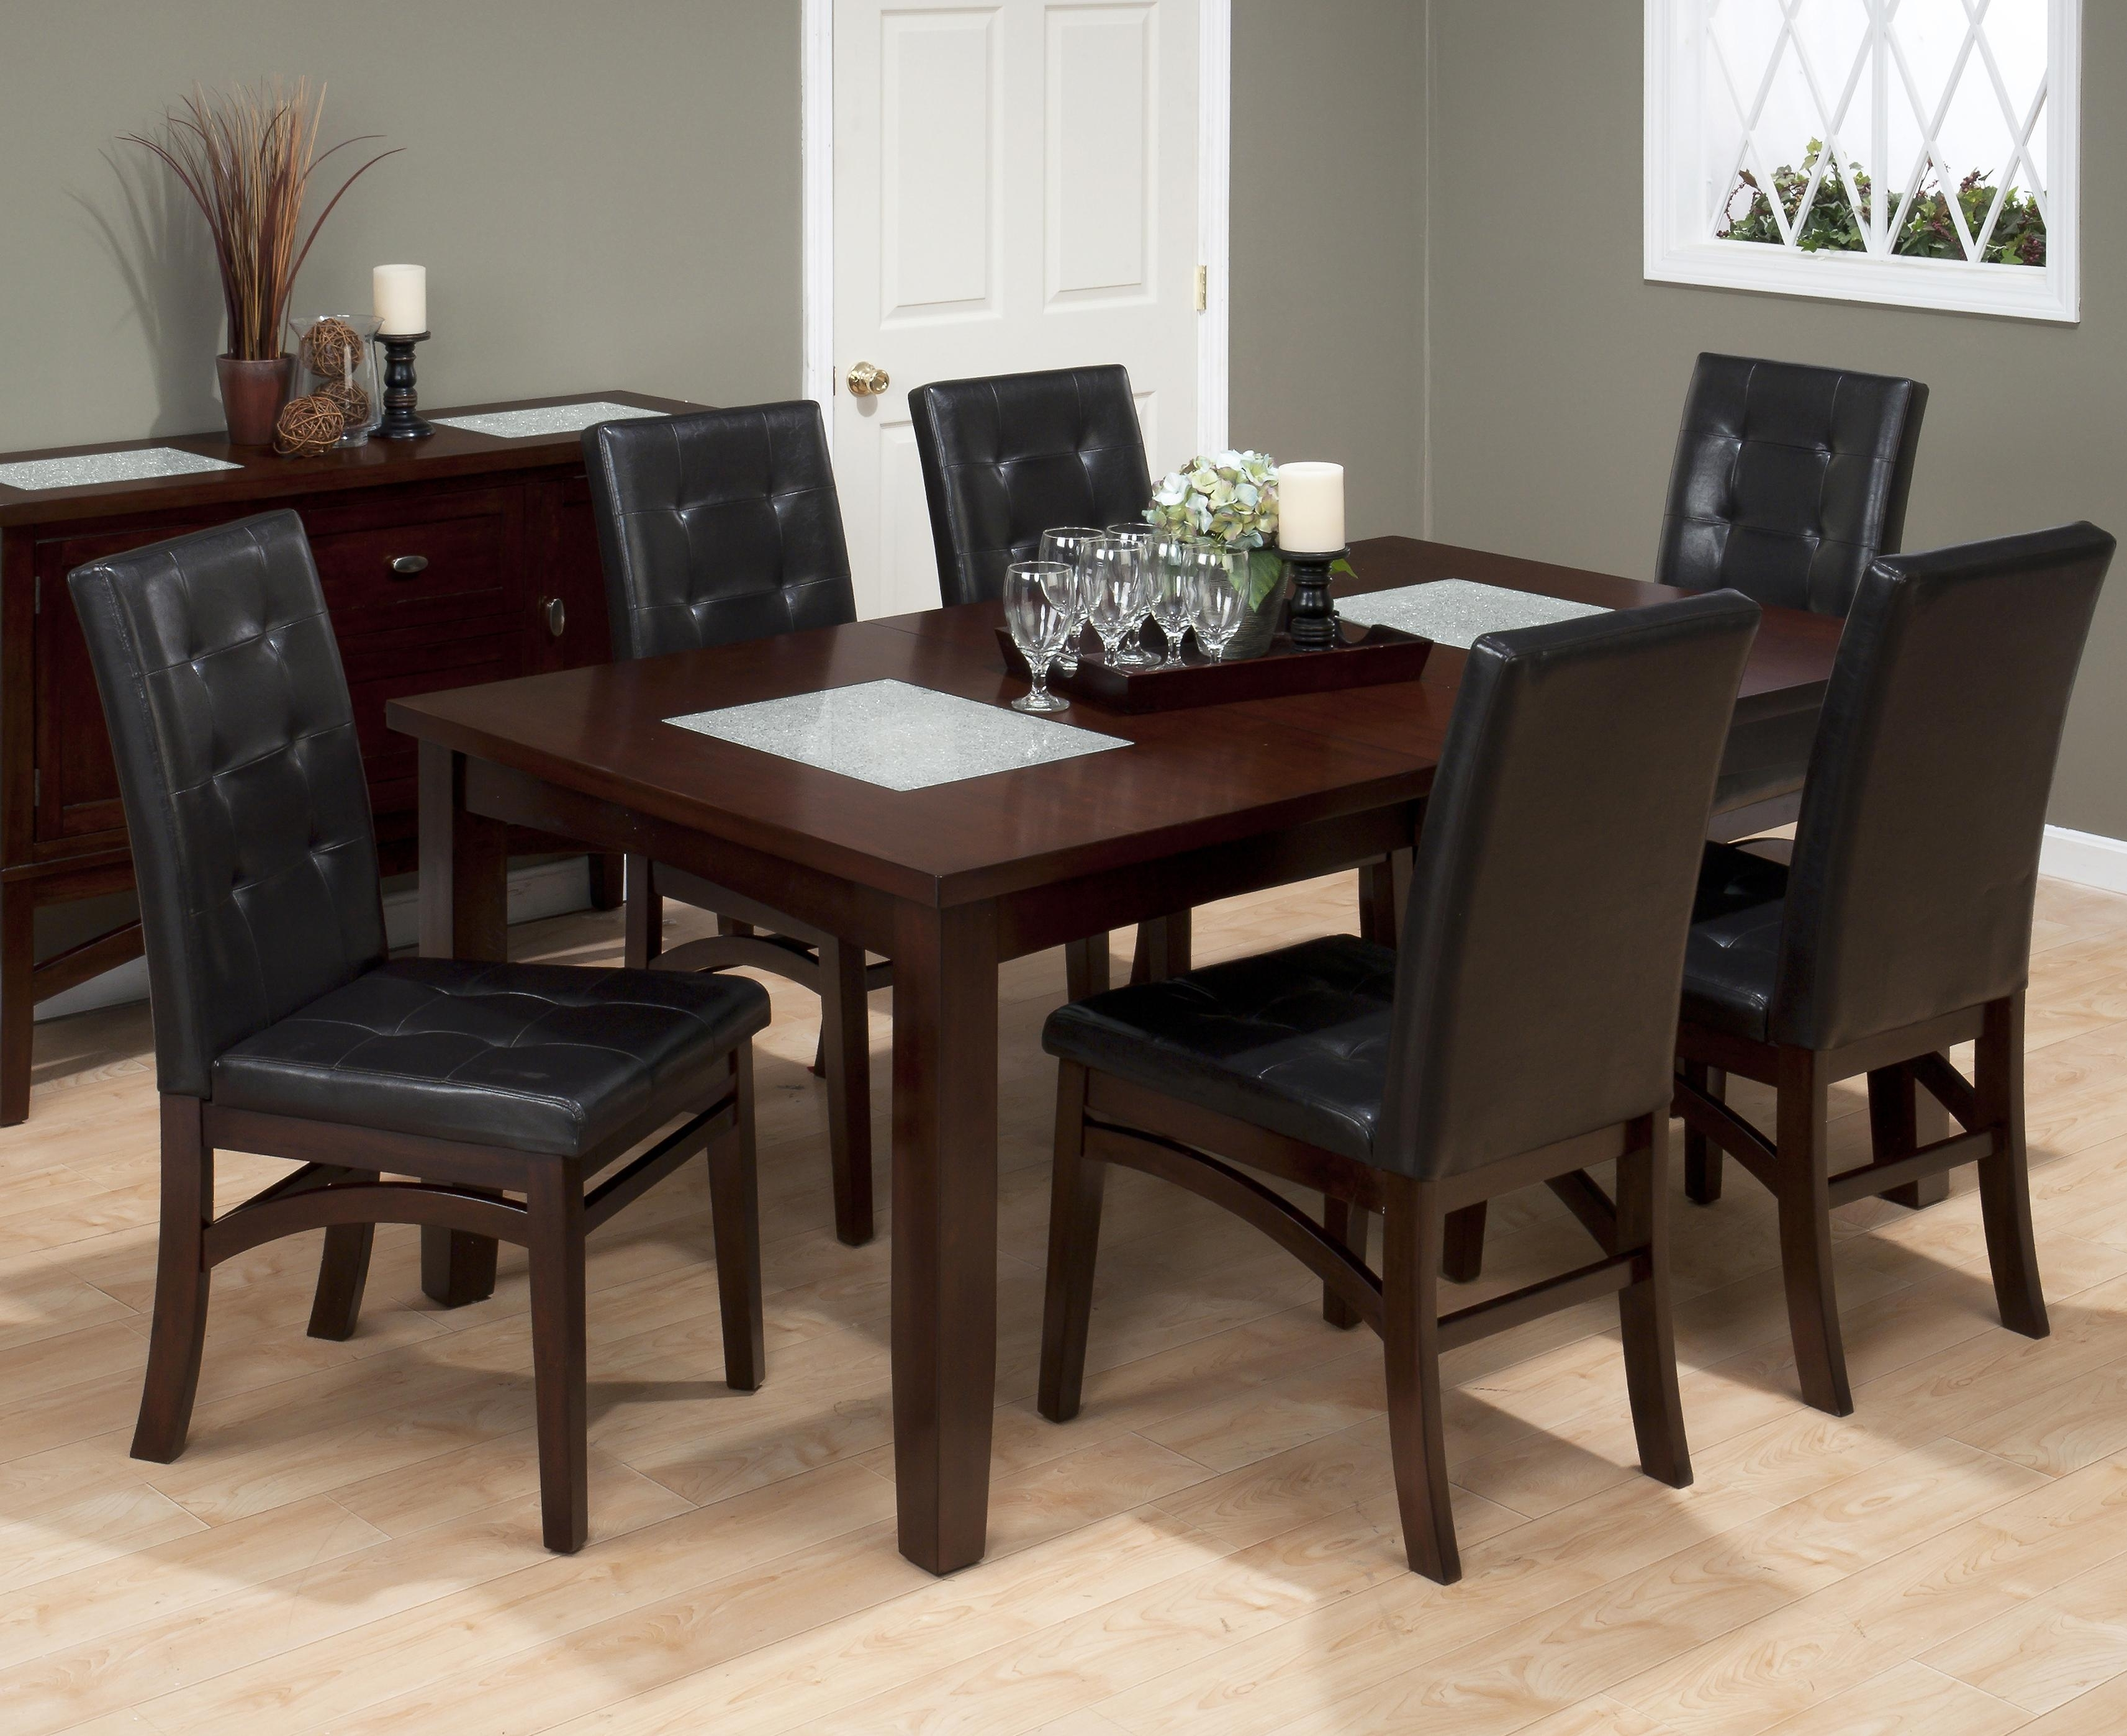 Jofran Chadwick Espresso 7 Piece Dining Set With Tufted Parson Chair Pertaining To 2018 Lindy Espresso Rectangle Dining Tables (Image 9 of 20)